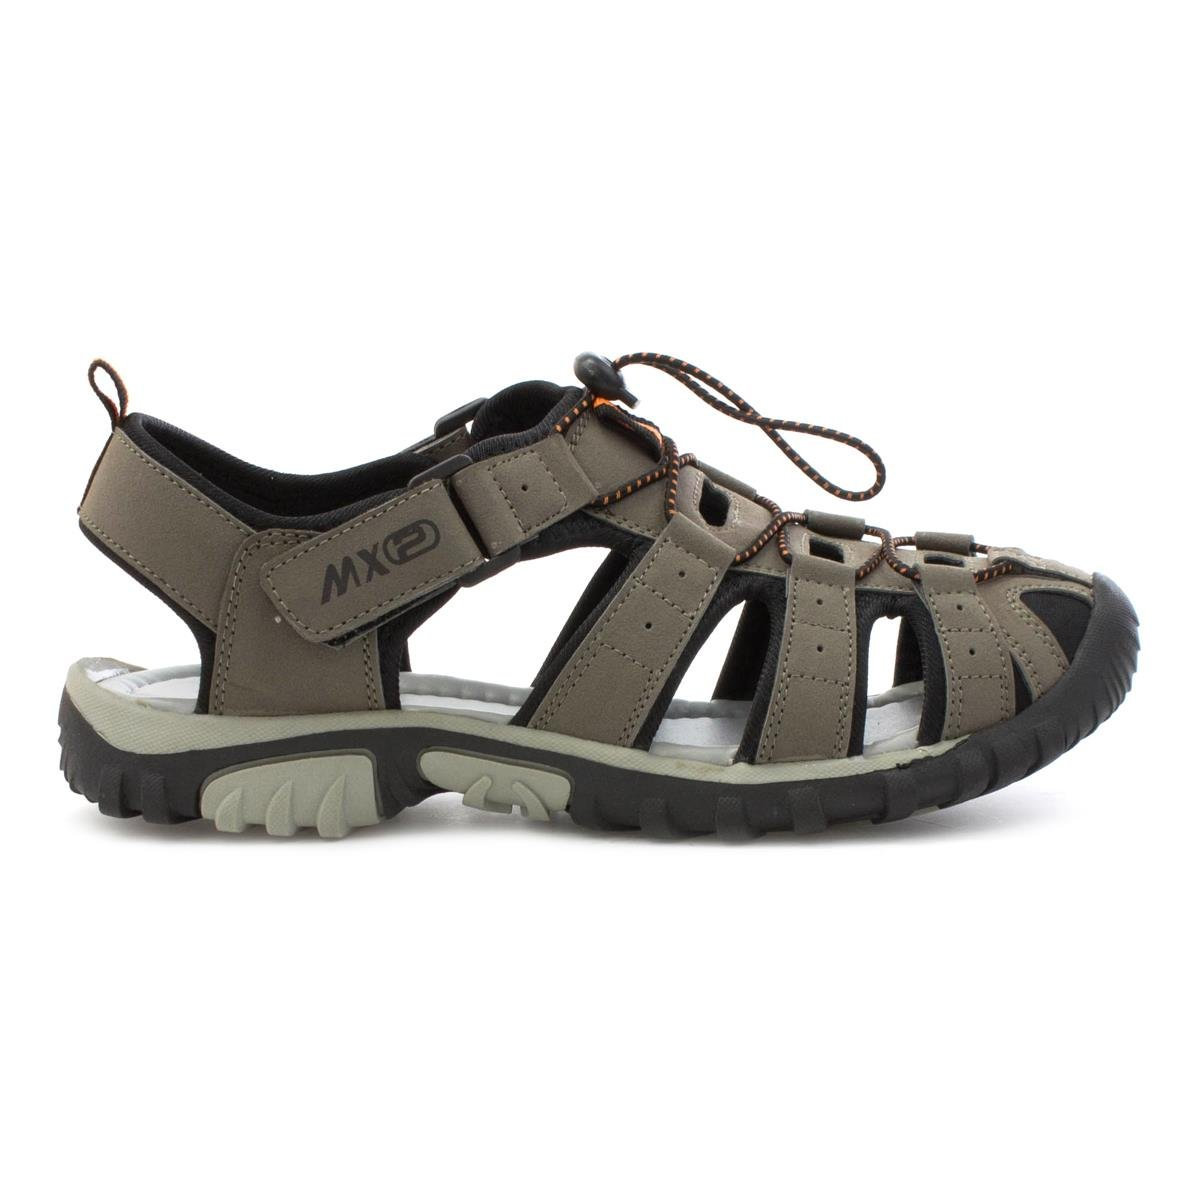 13975b0949b Mercury Mens Closed Toe Strappy Sandal in Grey  Amazon.co.uk  Shoes   Bags